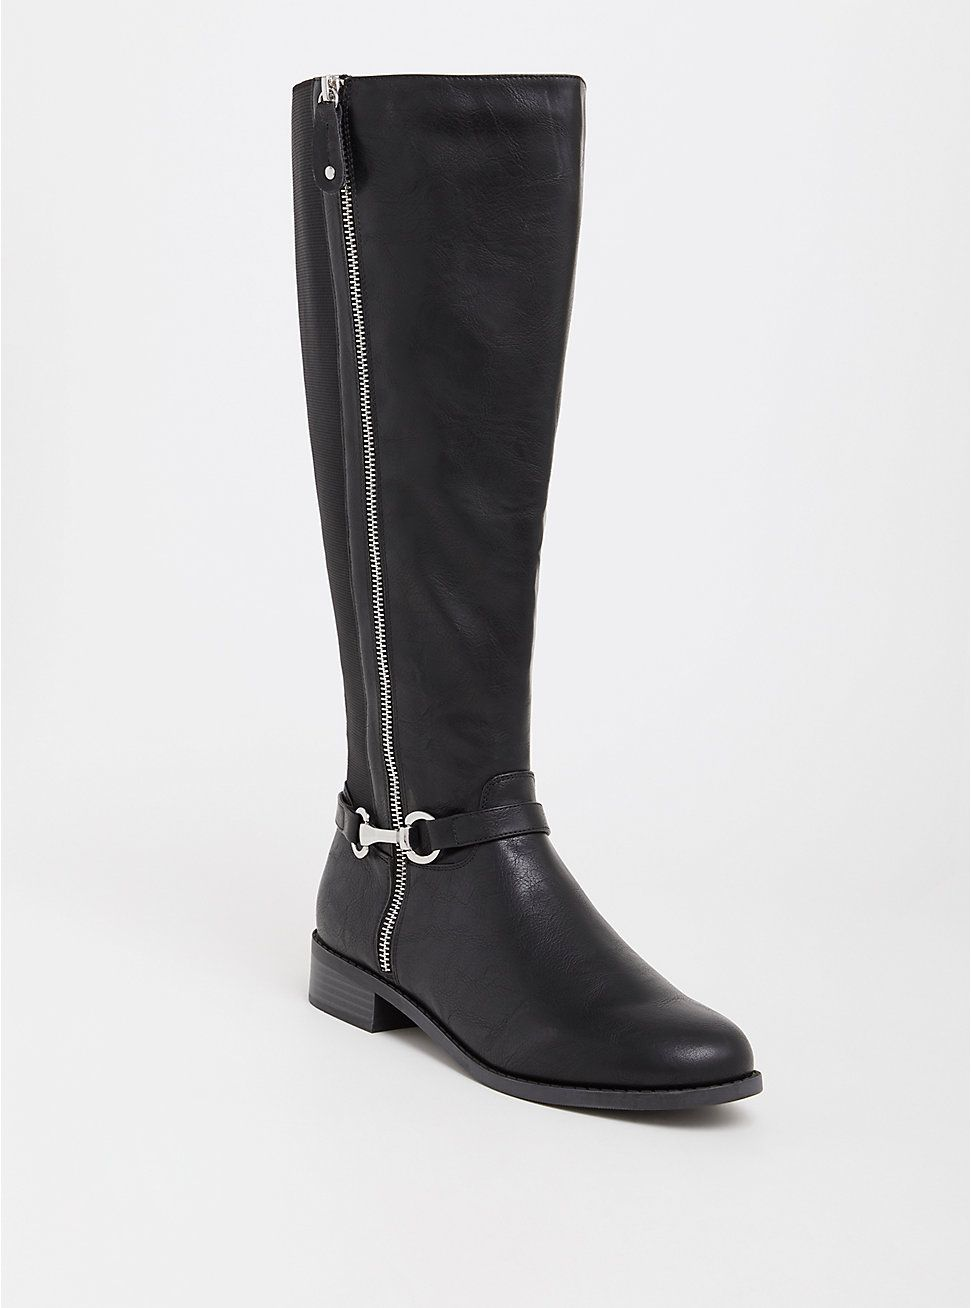 689298af8575 Black Faux Leather Riding Boot (Wide Width   Wide Calf)